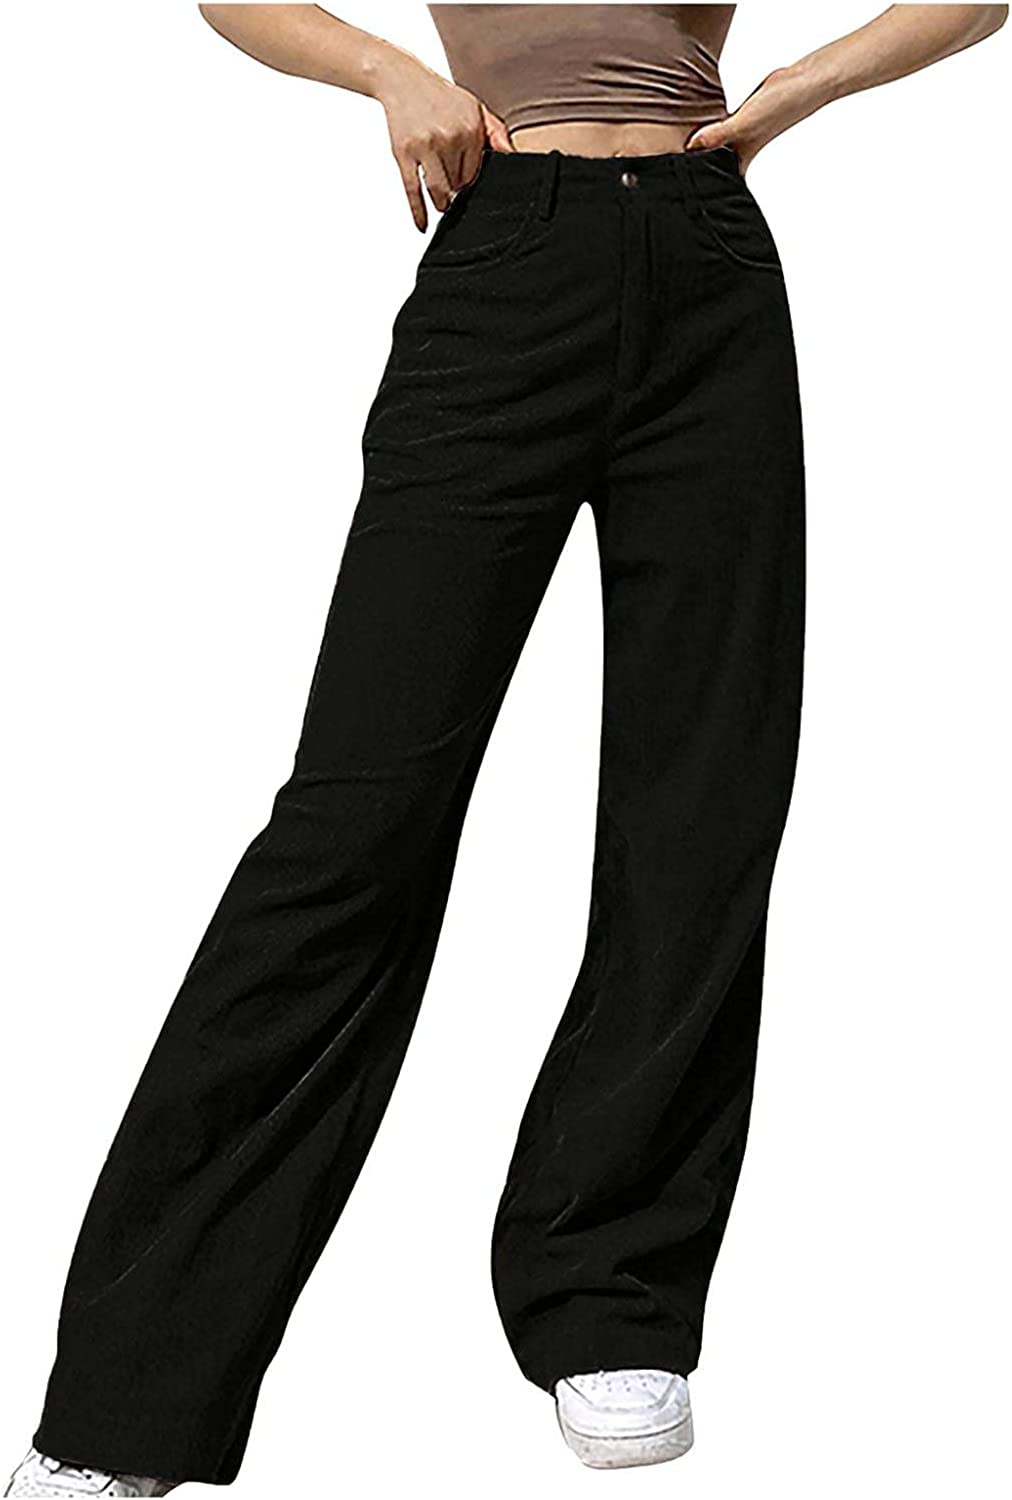 Corduroy Pants for Women High Waist Solid Vintage Y2K Straight Leg Loose Baggy Trousers Casual Hipster Streetwear